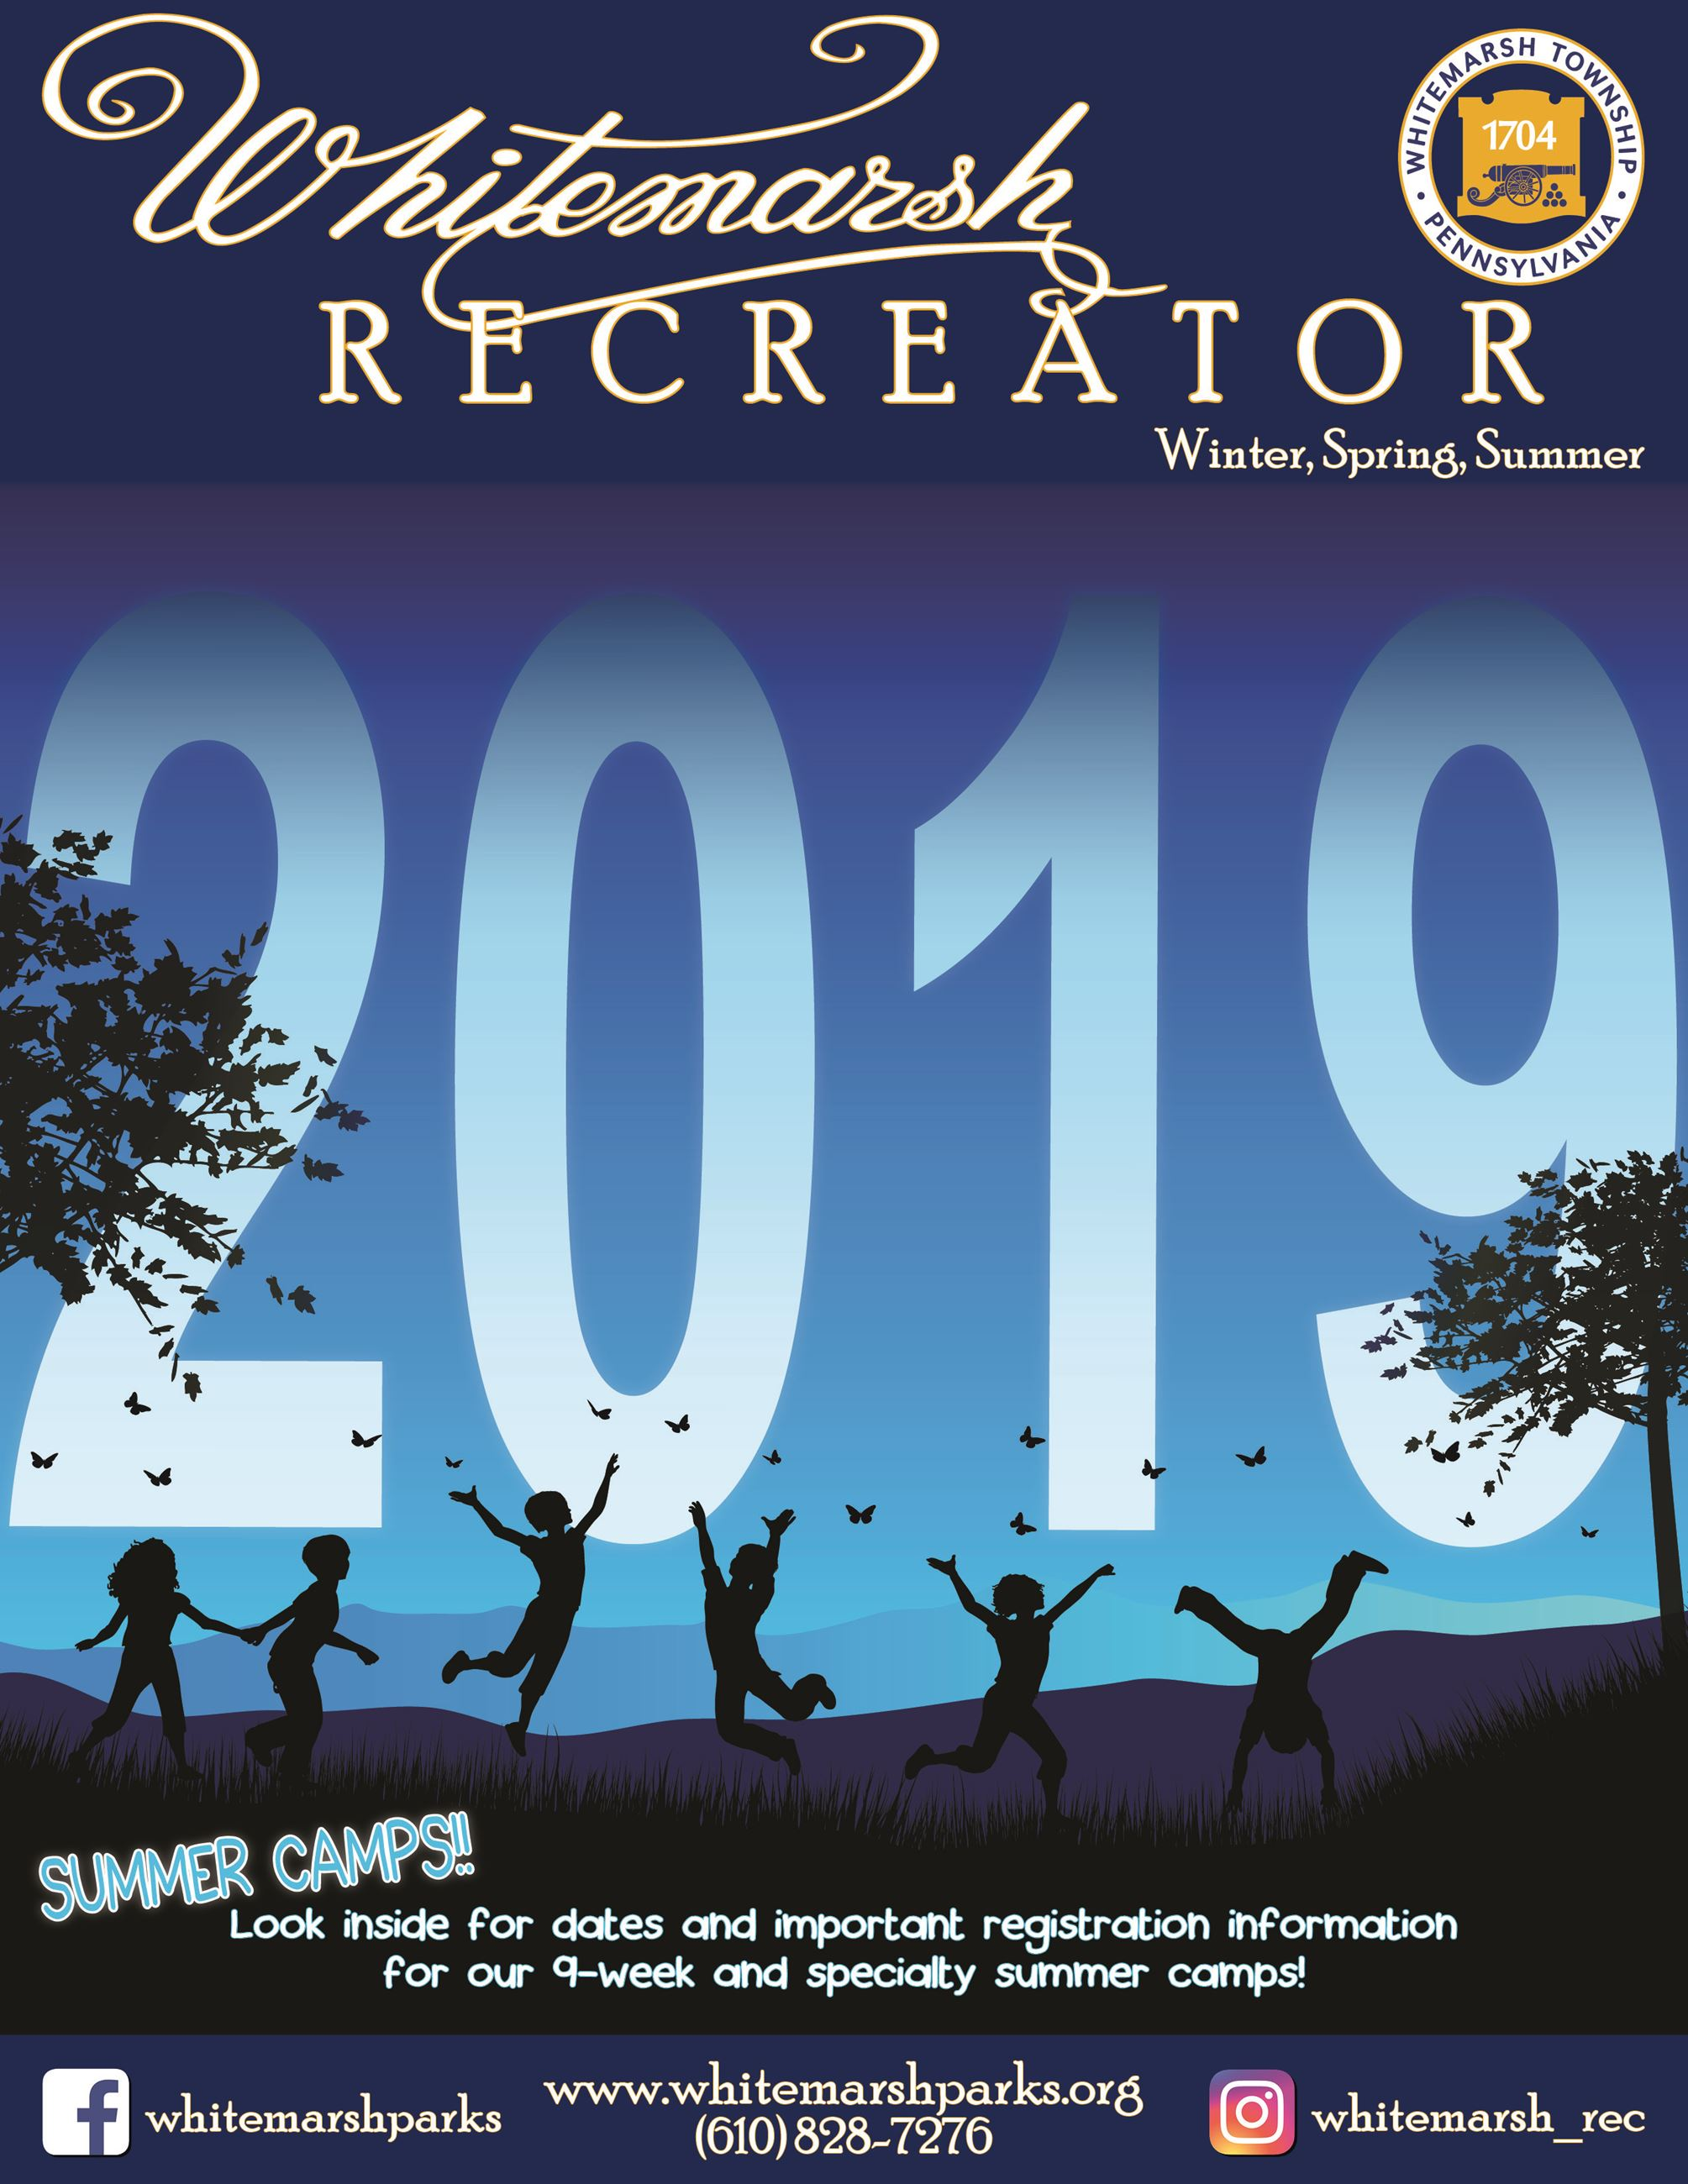 Winter, Spring, Summer 2019 Recreator Cover